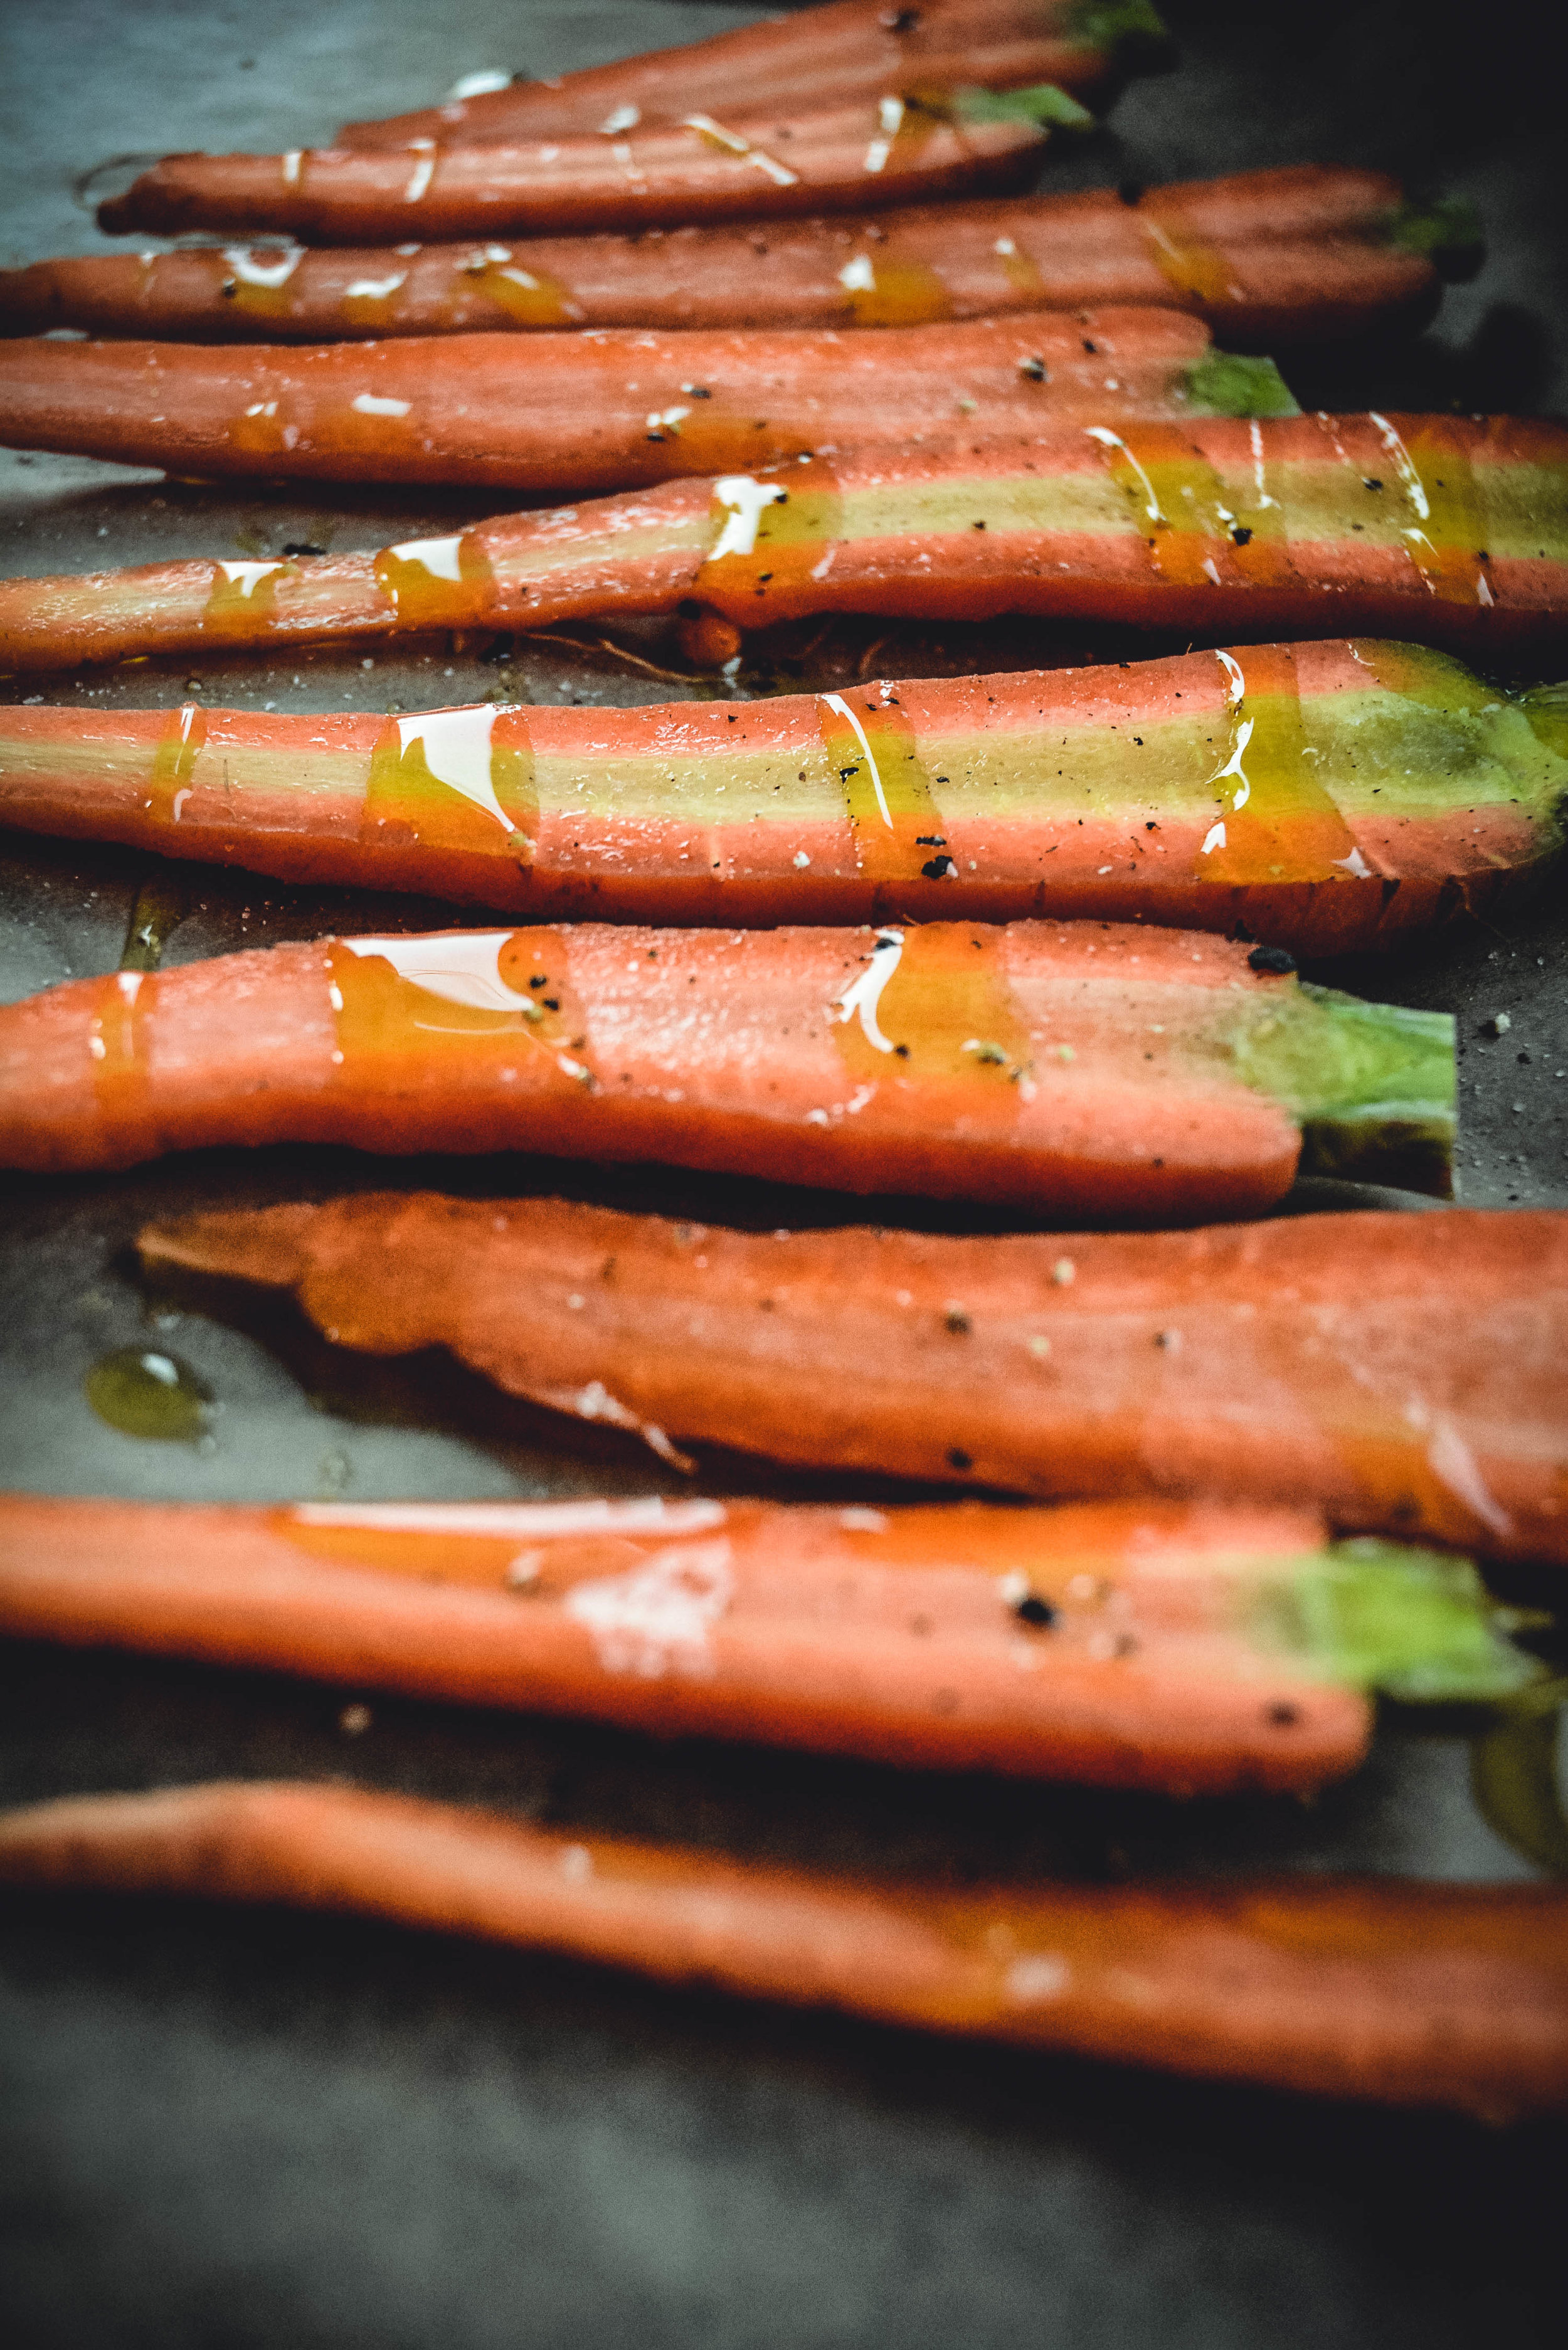 carrots on parchment paper